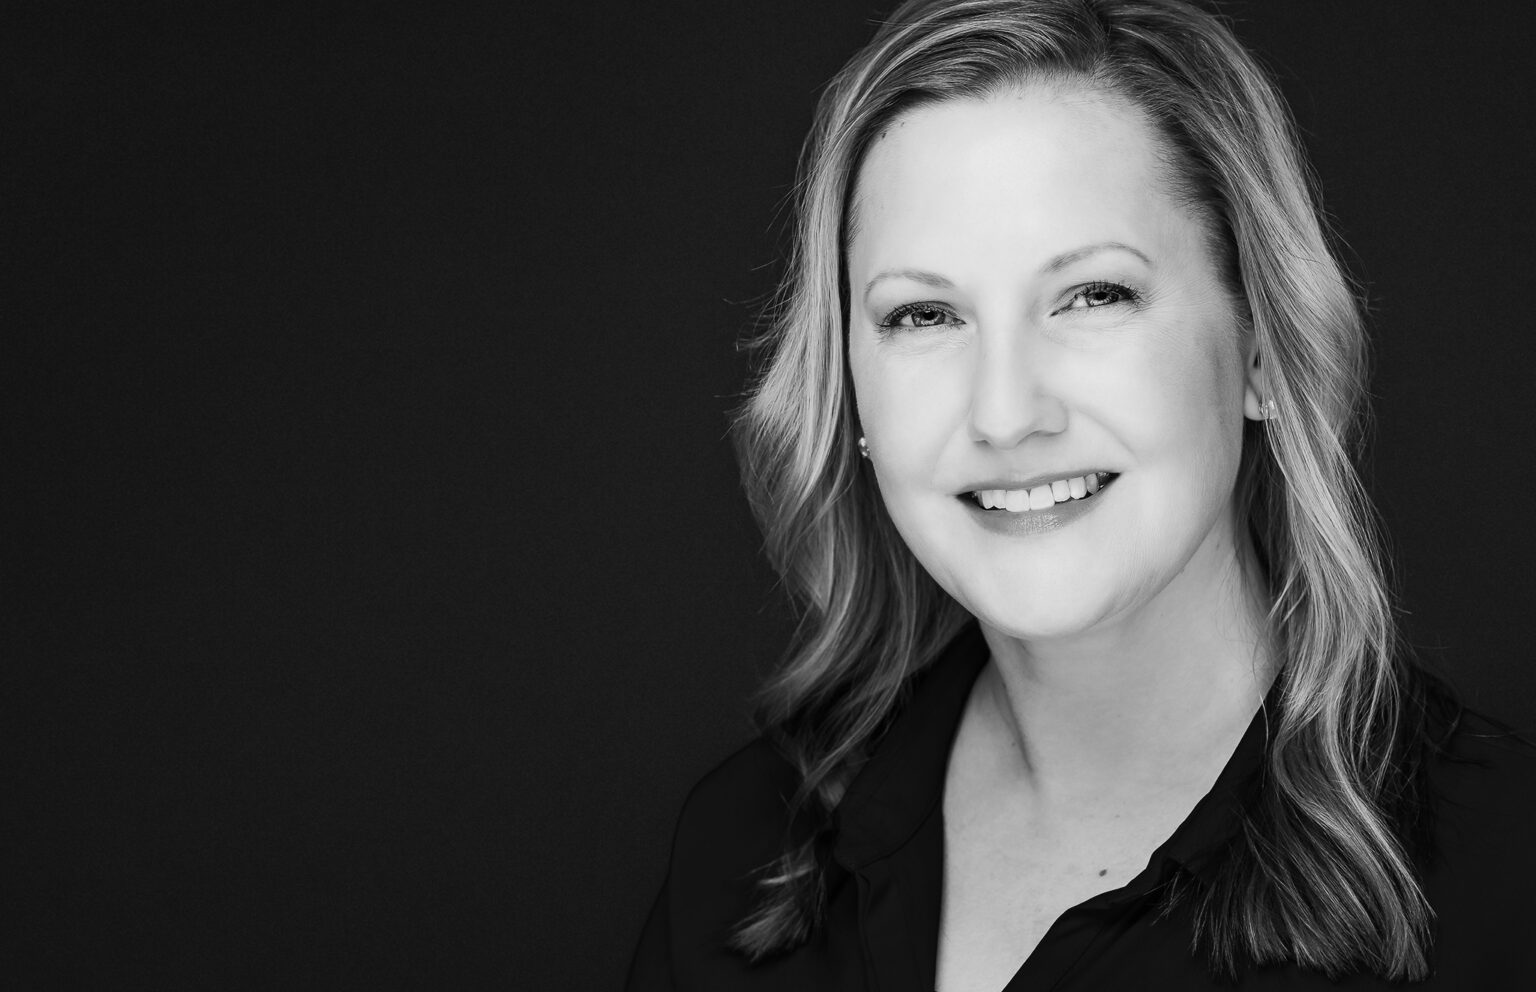 Photo of Gidget Hall, B2B Copywriter for Cleantech & Climate Action Brands